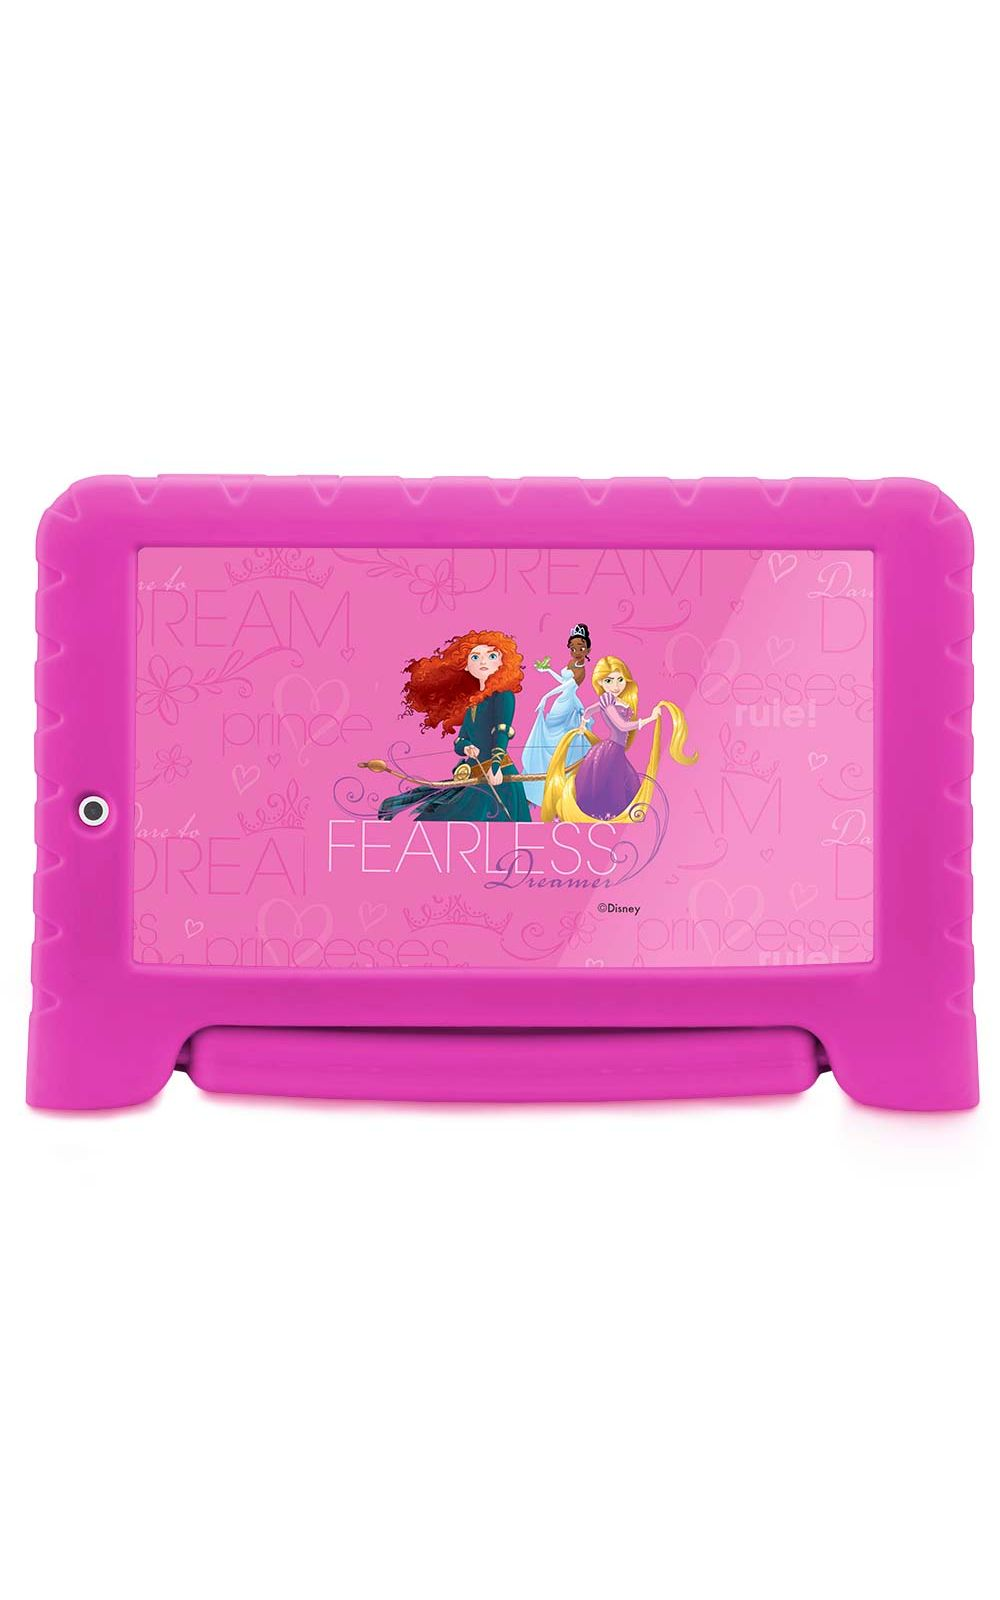 Foto 1 - Tablet Disney Princesas Plus Wifi 8Gb Dual Câmera Android 7 Rosa Multilaser - NB281